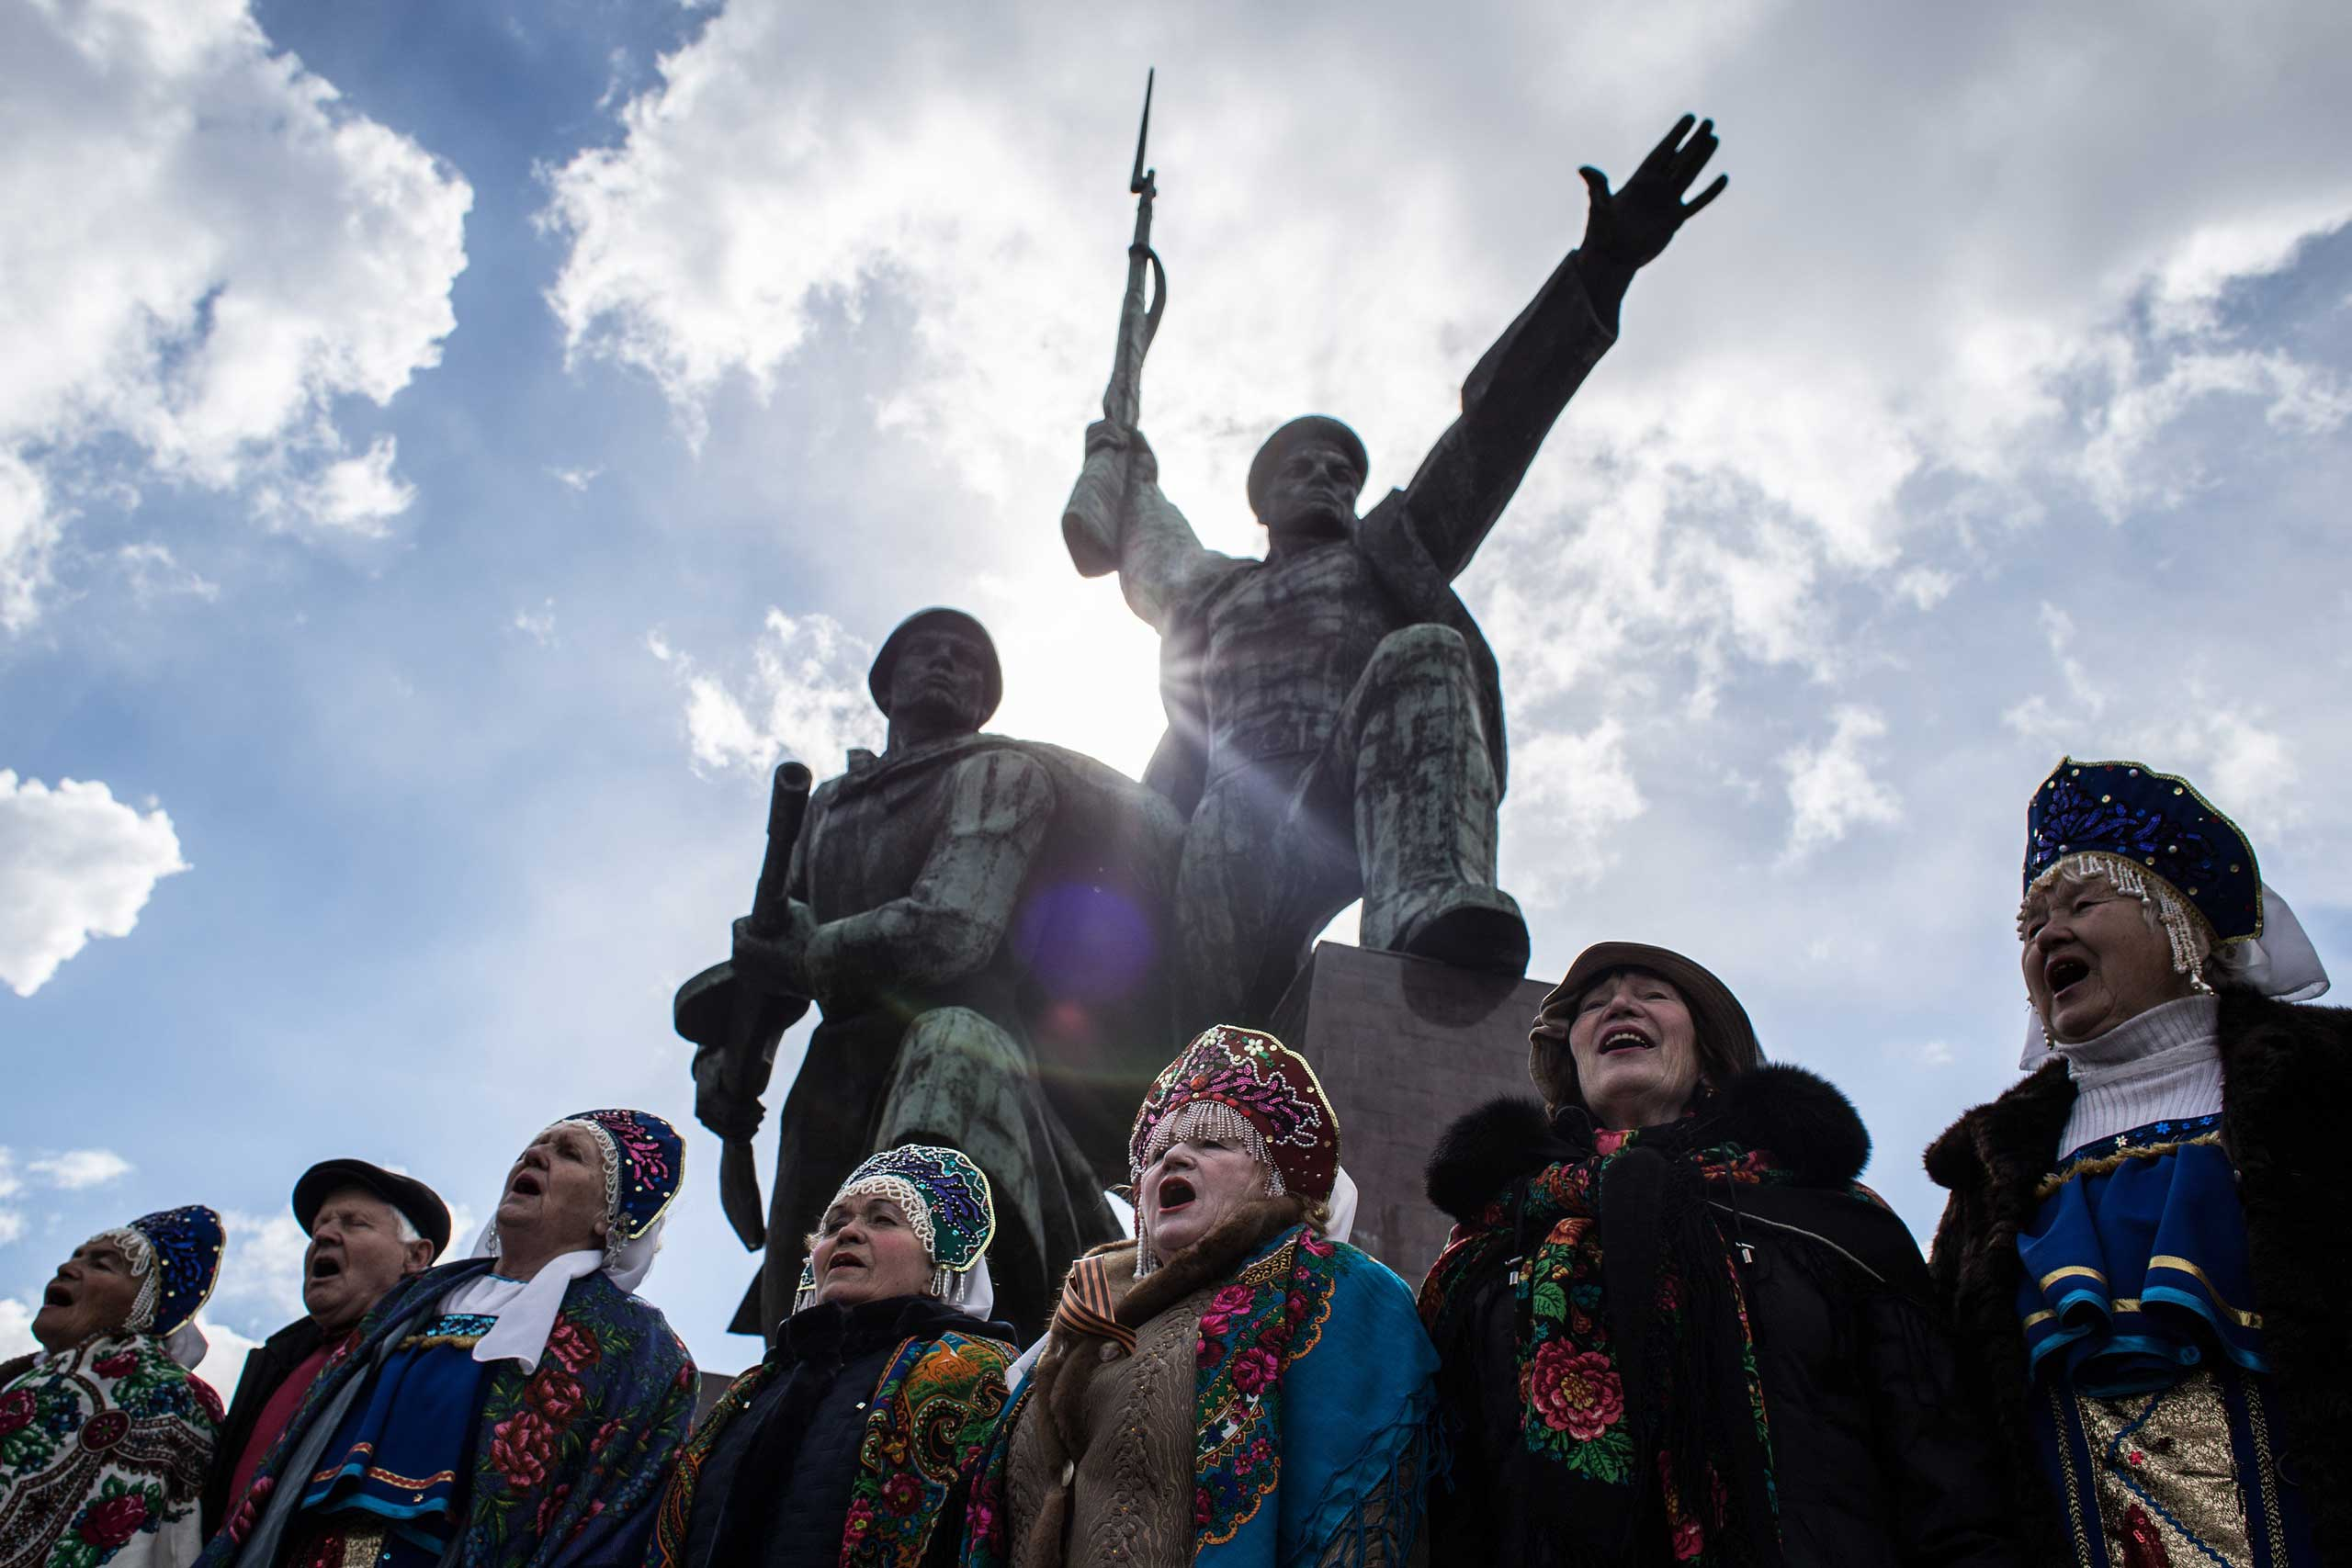 People sing on the first anniversary of the annexation to Russia, March 18, 2015 in Sevastopol.